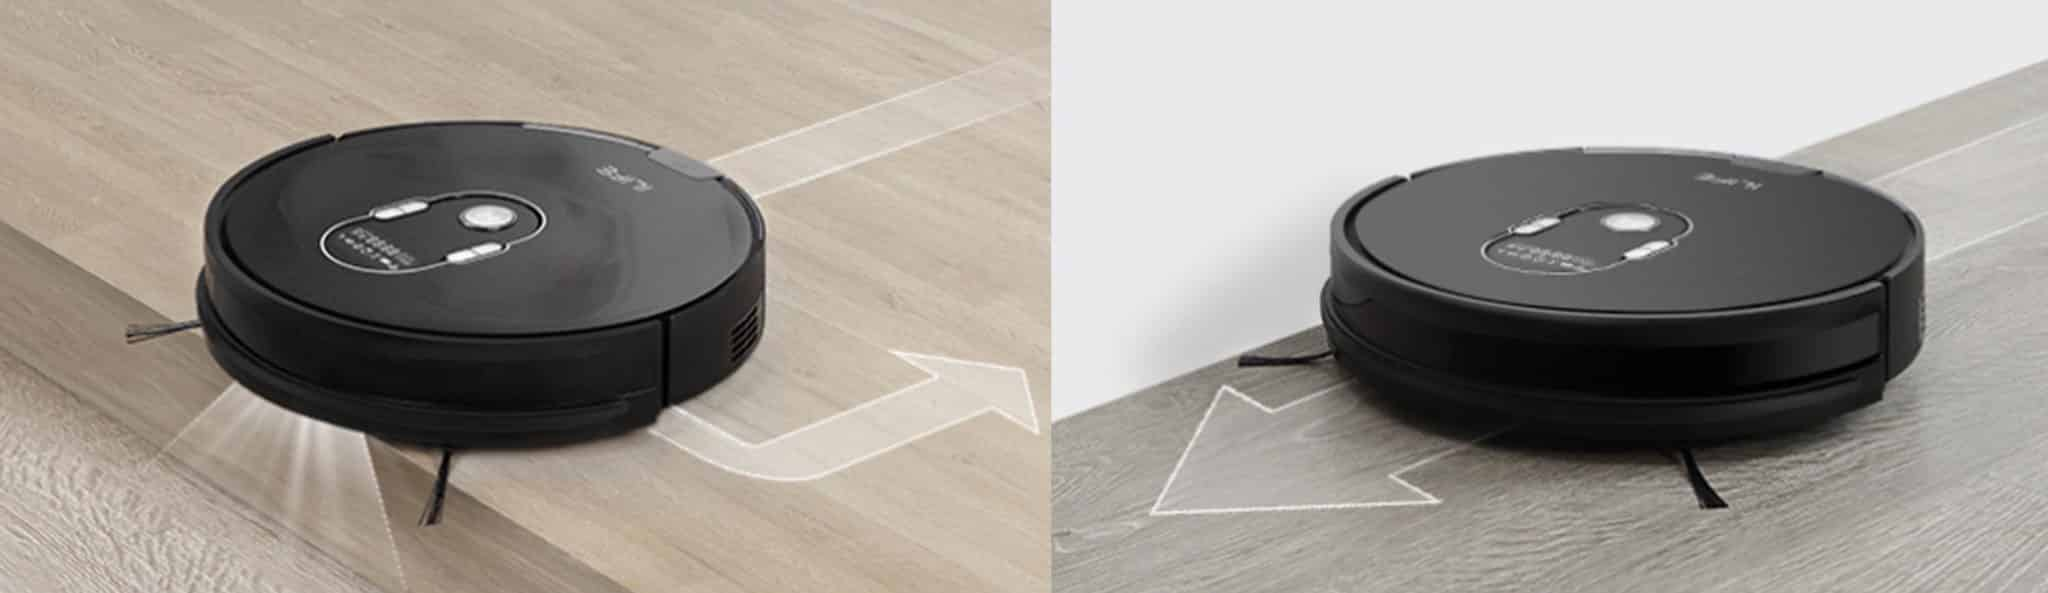 ILIFE A7 Robot vacuum cleaner